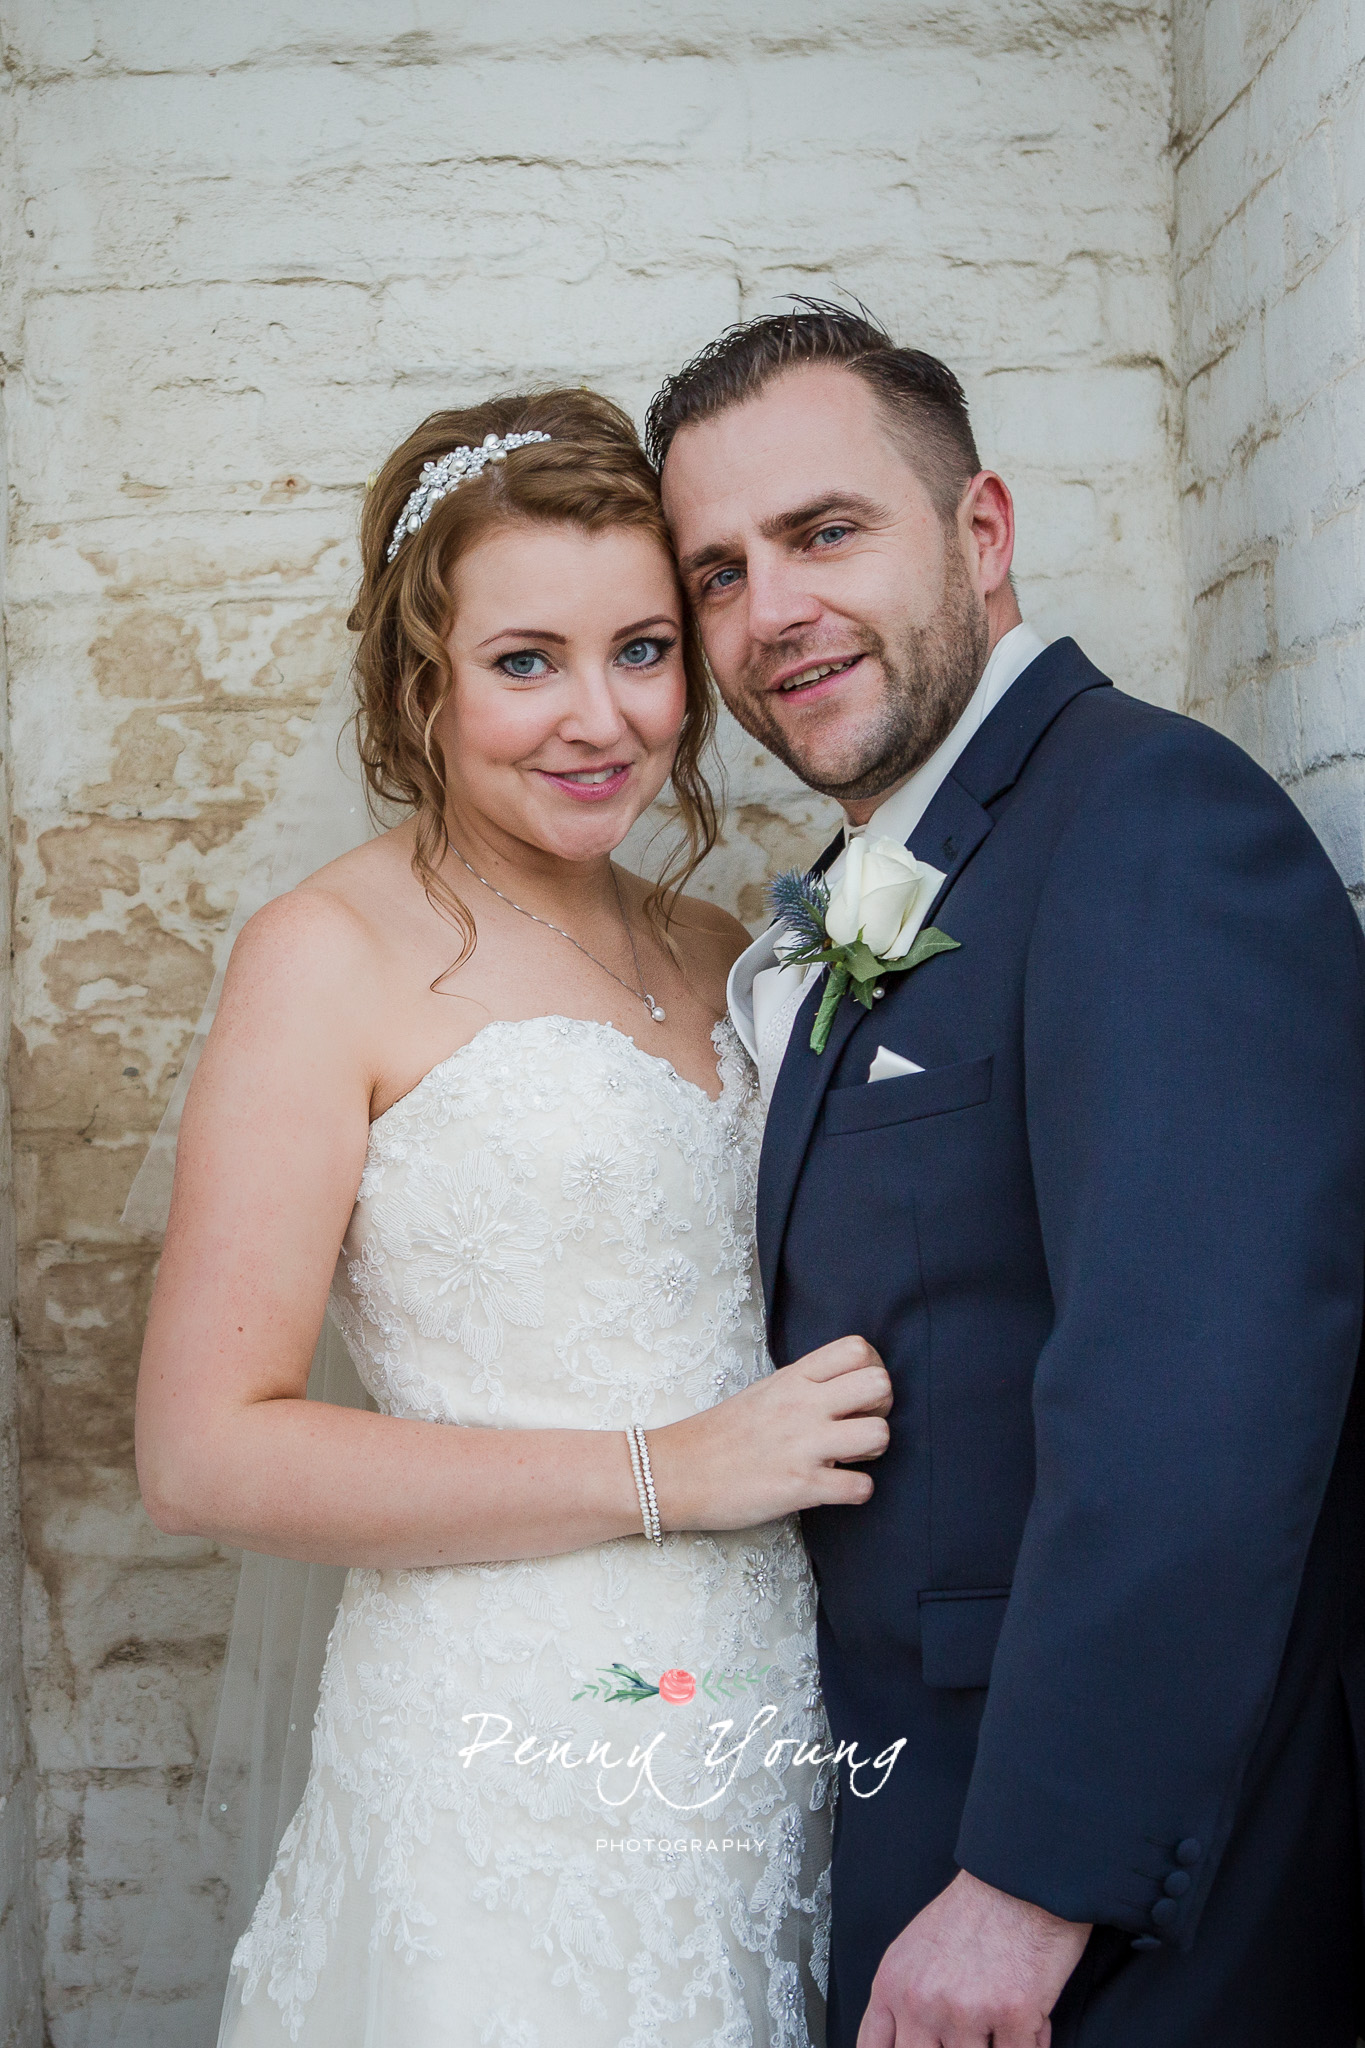 Penny_Young_Photography_The_Bell_Ticehurst_Wedding-Photography_Rachel_Matt_390